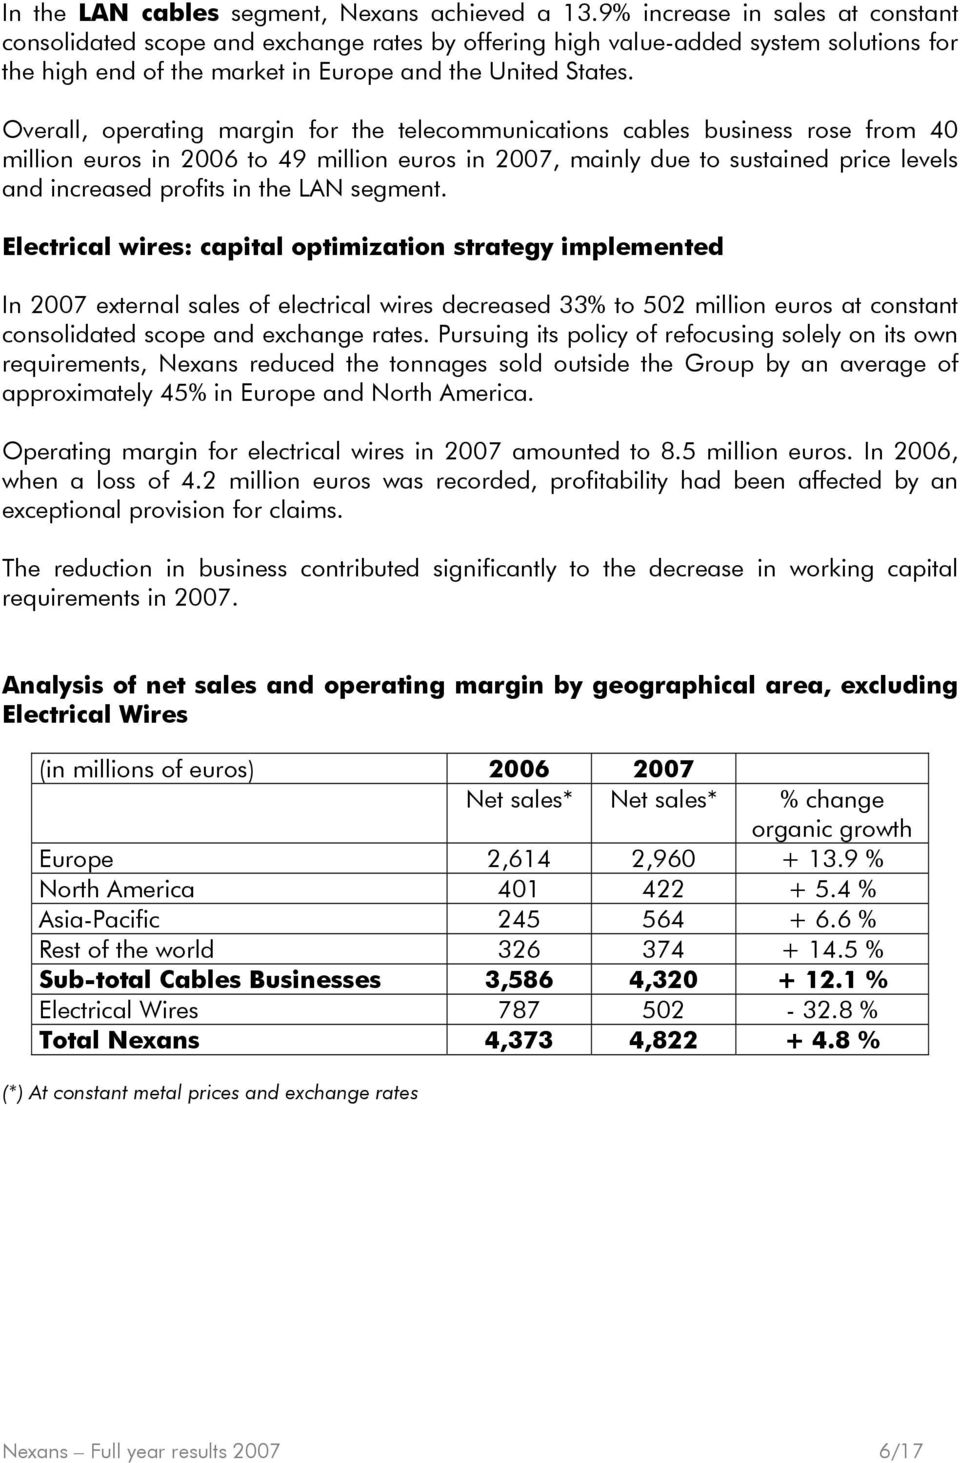 Overall, operating margin for the telecommunications cables business rose from 40 million euros in 2006 to 49 million euros in 2007, mainly due to sustained price levels and increased profits in the